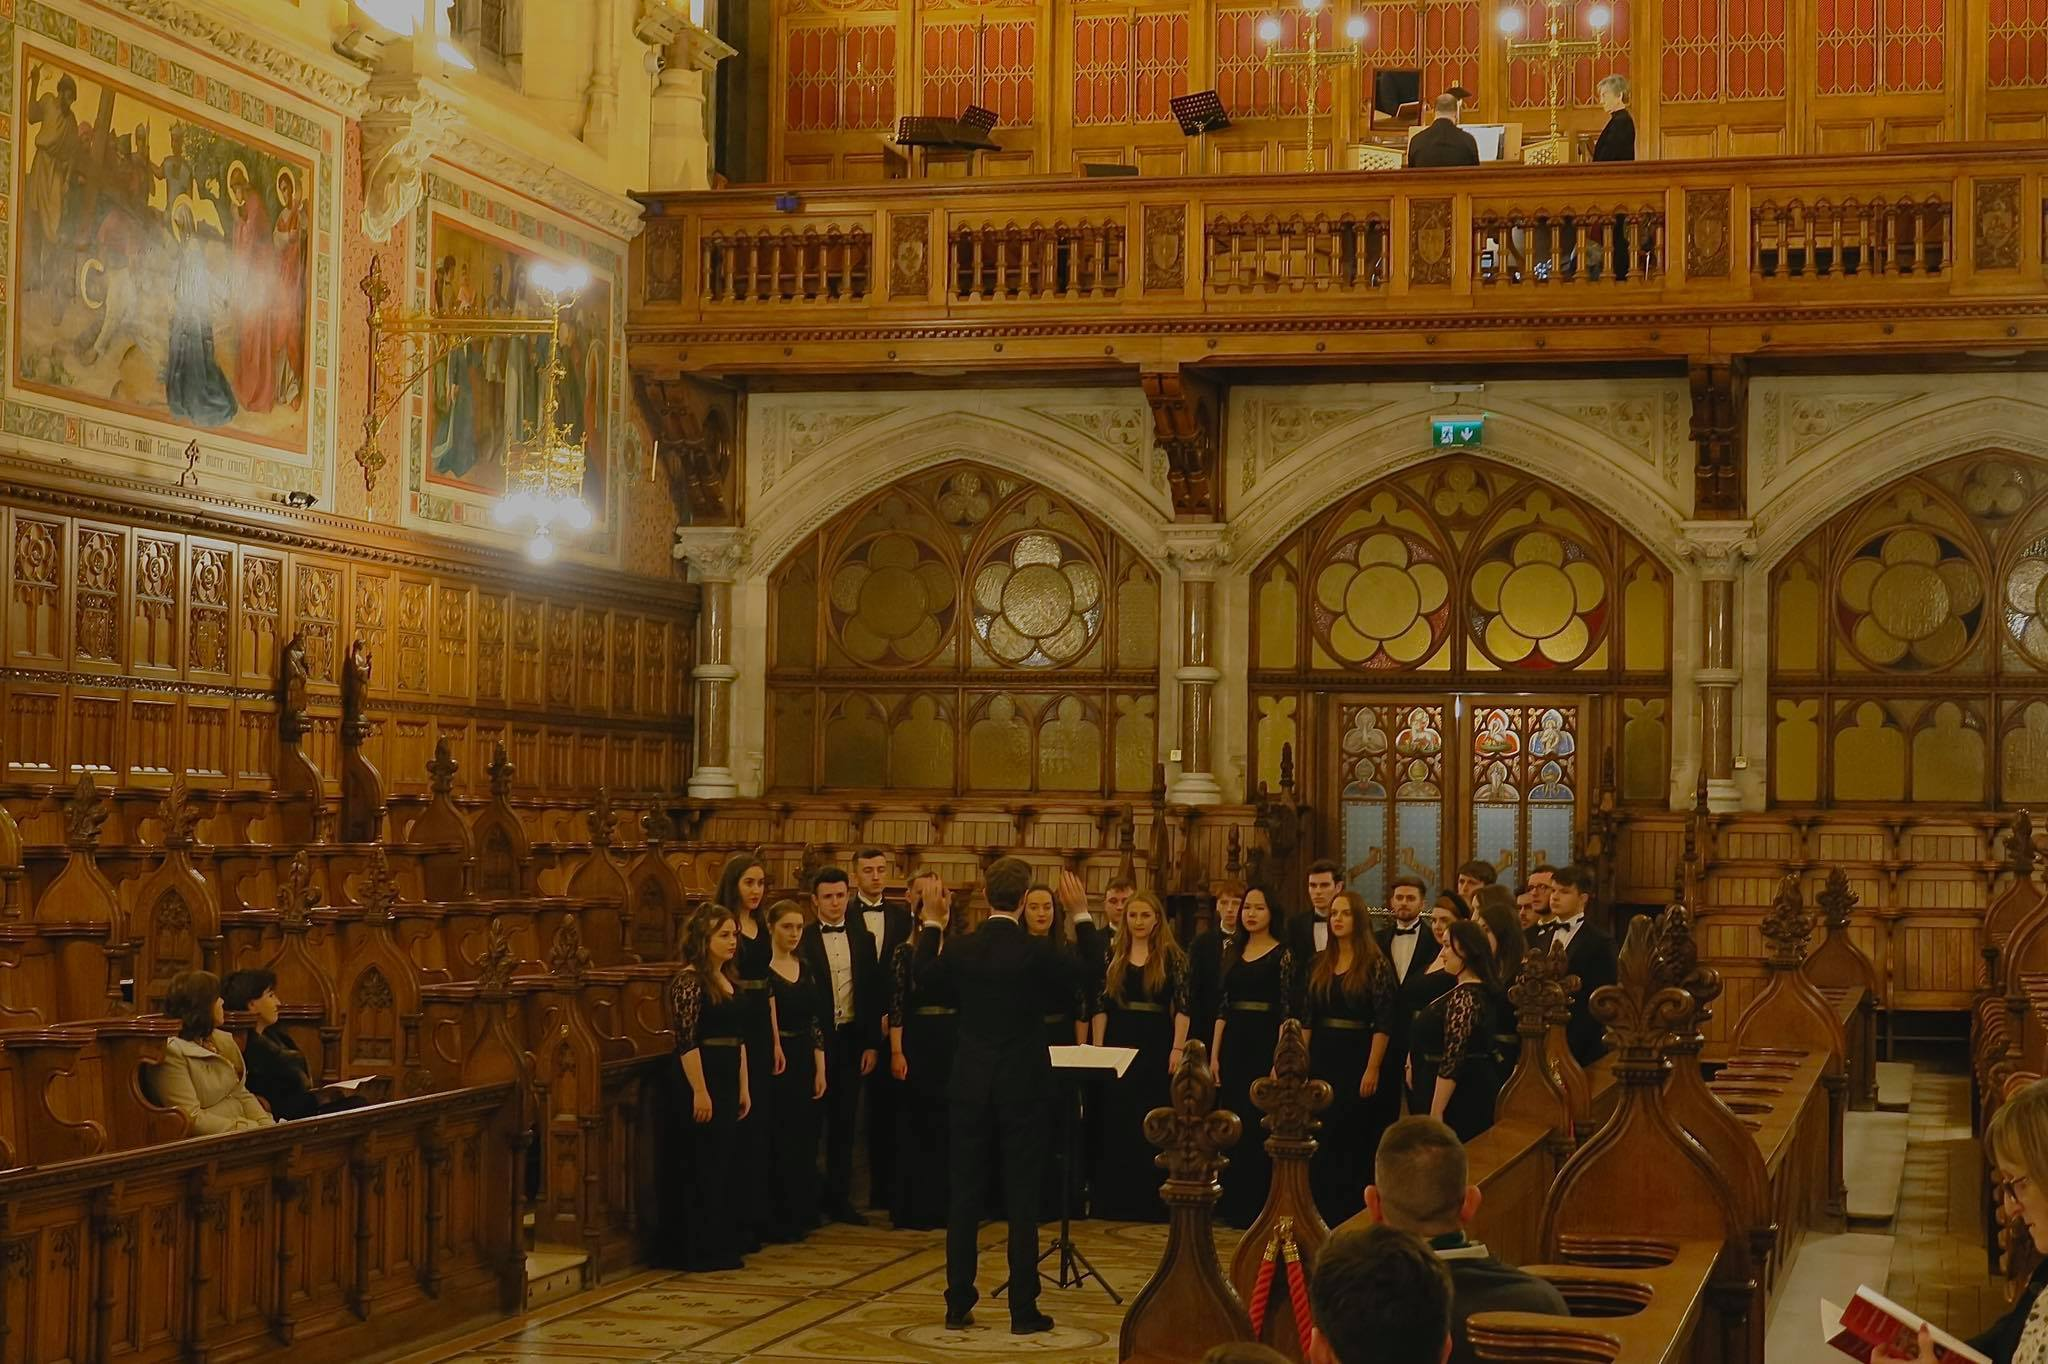 Maynooth-University-Chamber-Choir-in-the-Chapel.jpg#asset:9315